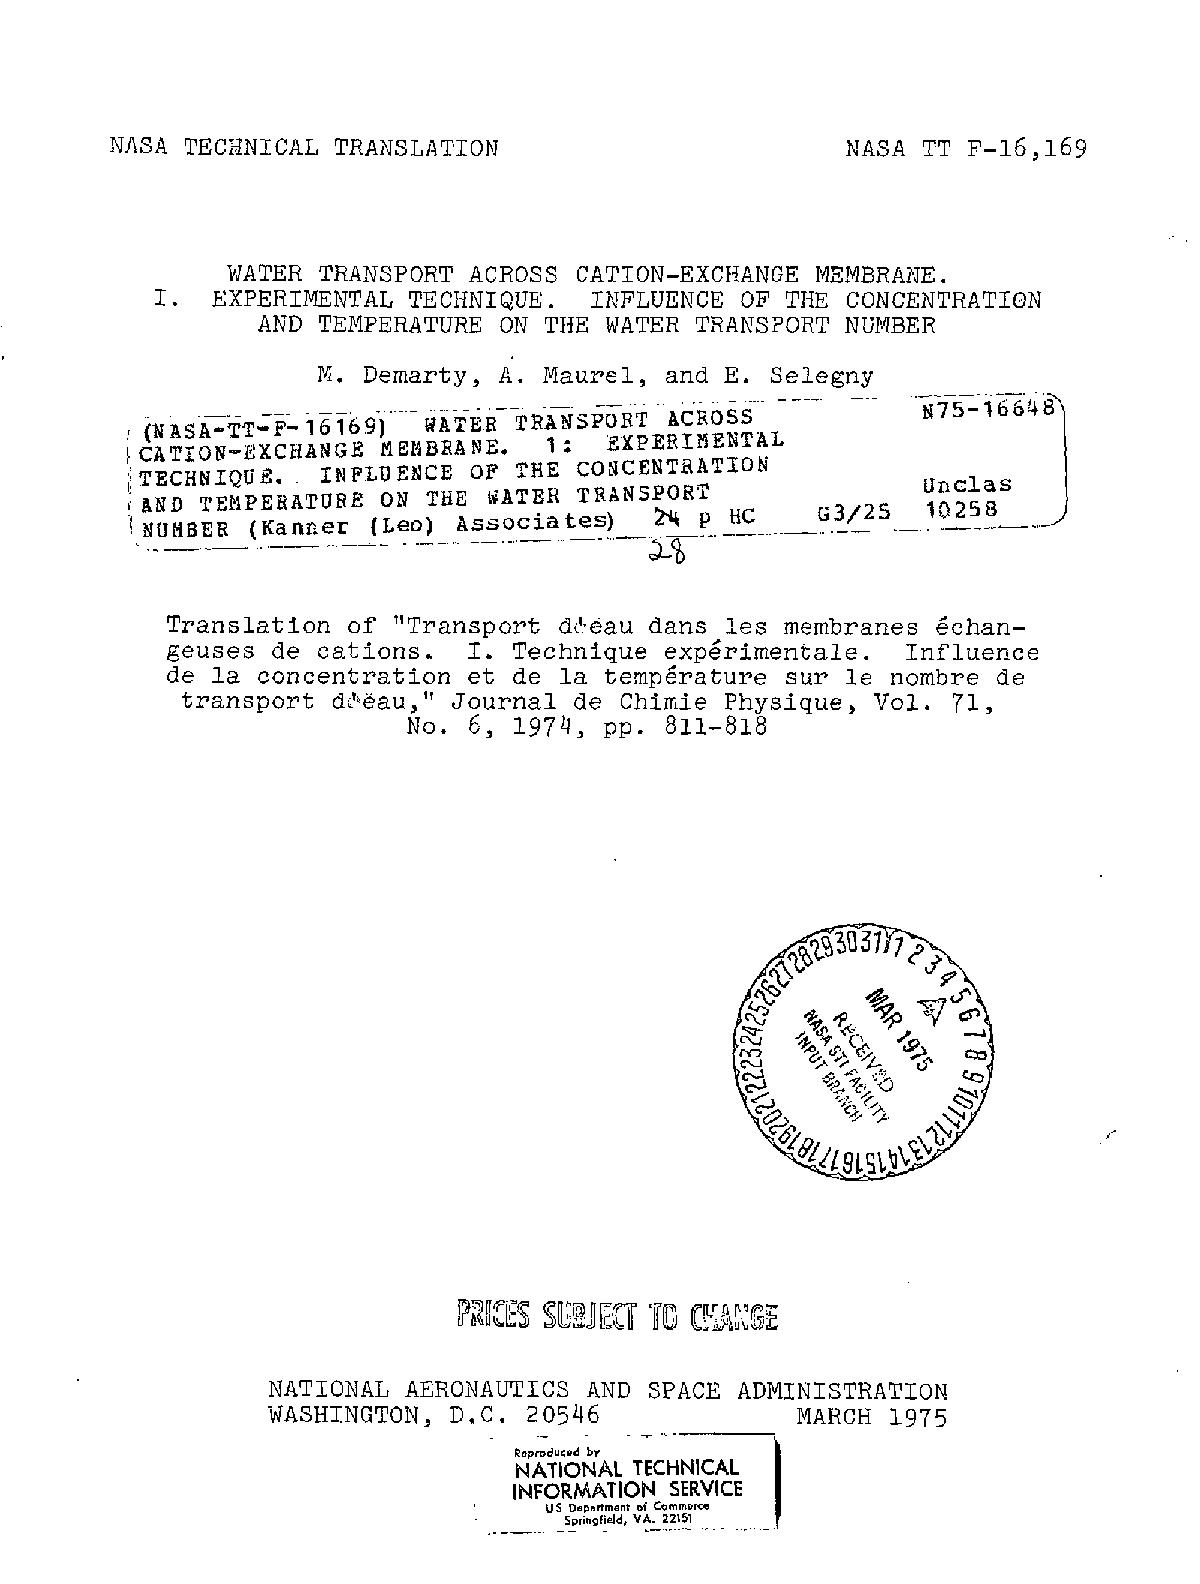 M. DEMARTY - WATER TRANSPORT ACROSS CATION-EXCHANGE MEMBRANE. 1: EXPERIMENTAL TECHNIQUE. INFLUENCE OF THE CONCENTRATION AND TEMPERATURE ON THE WATER TRANSPORT NUMBER